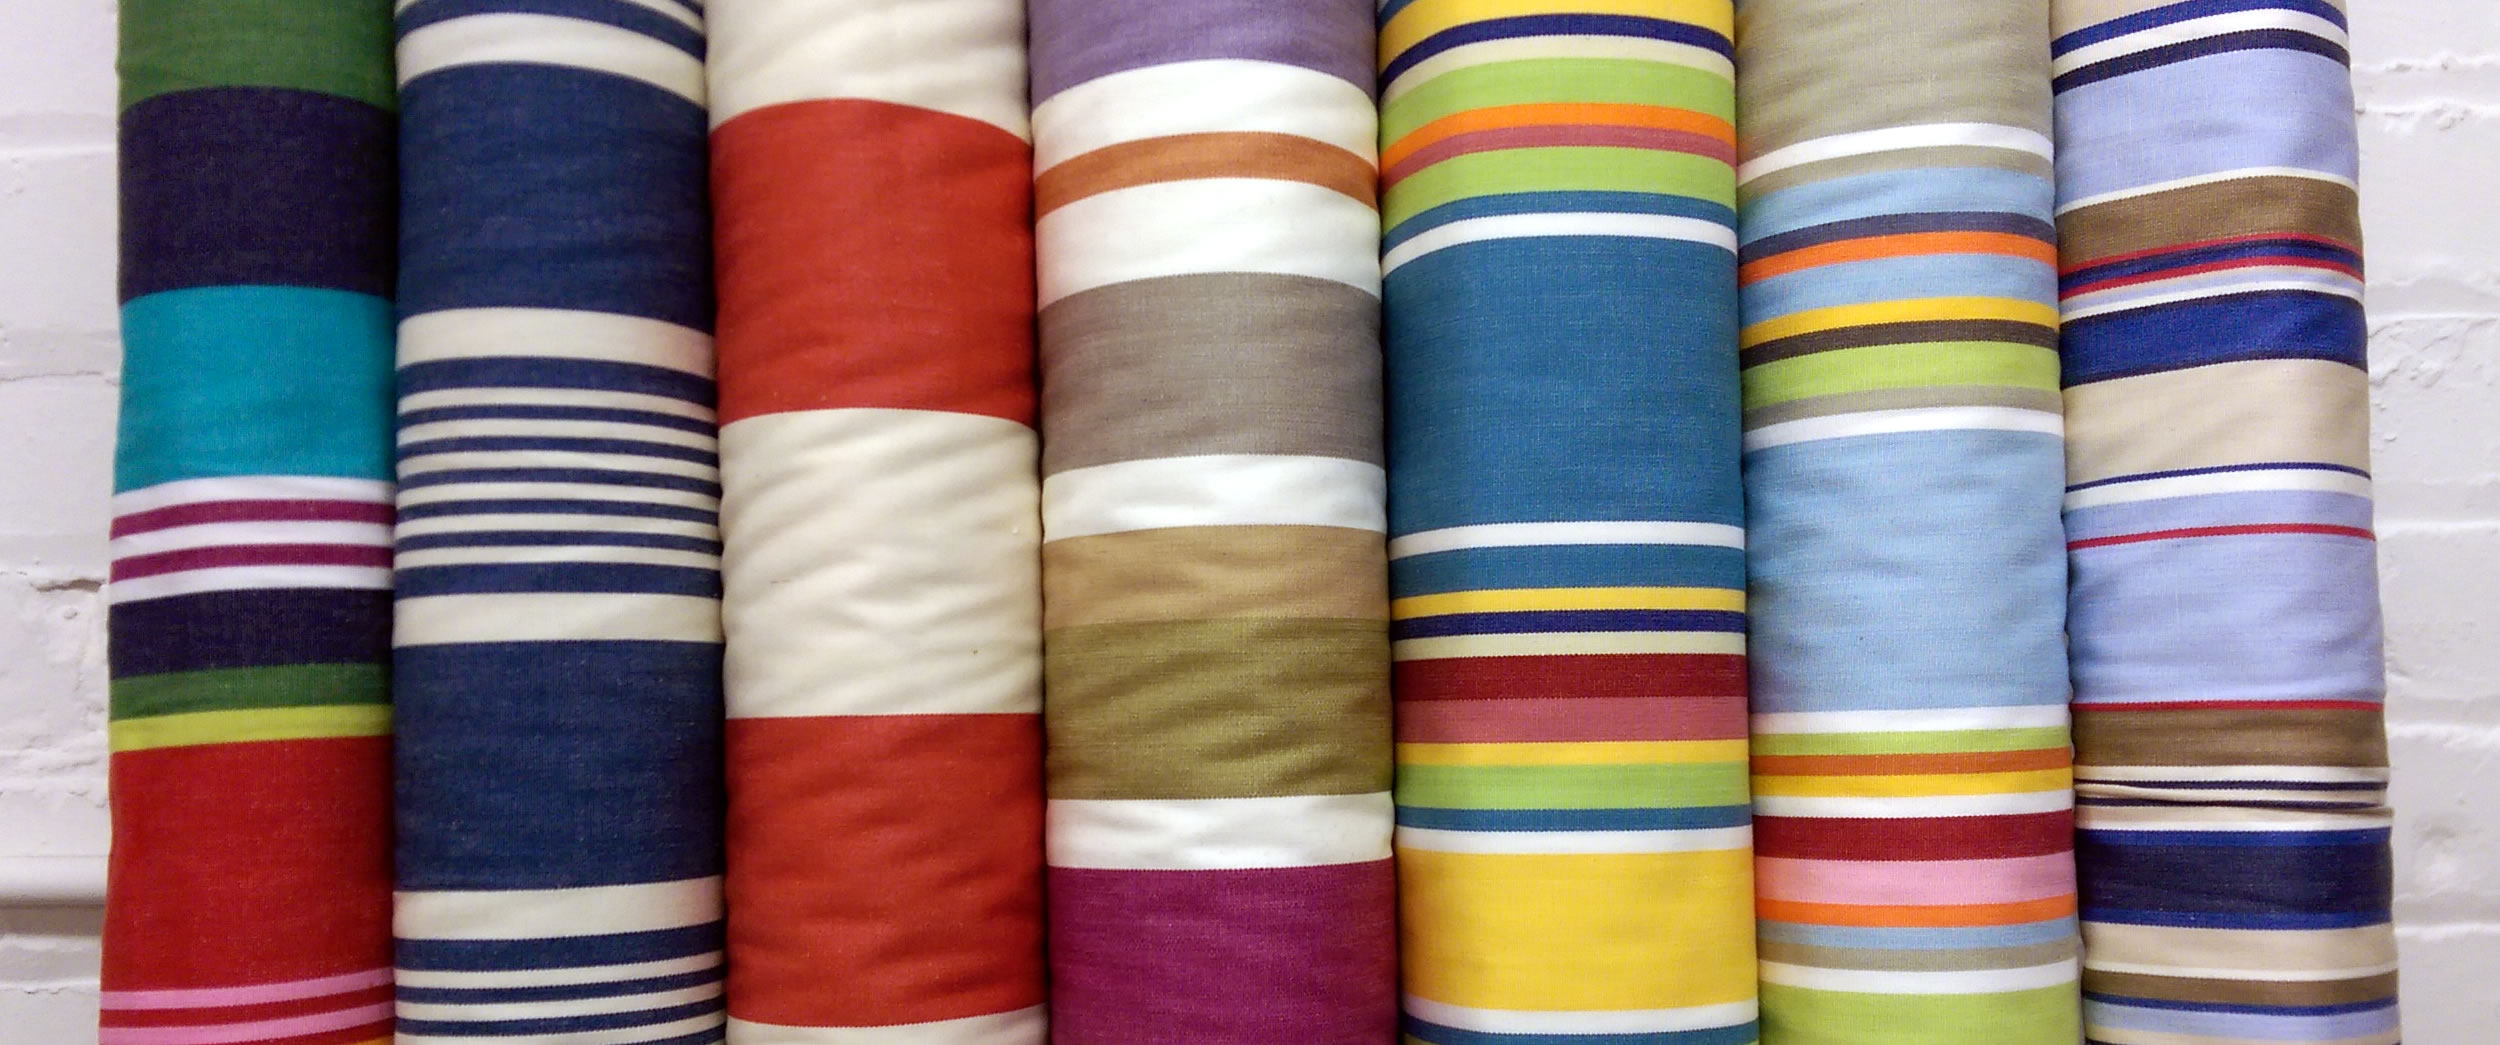 Wipe Clean Fabrics | Striped Water Repellent Fabrics